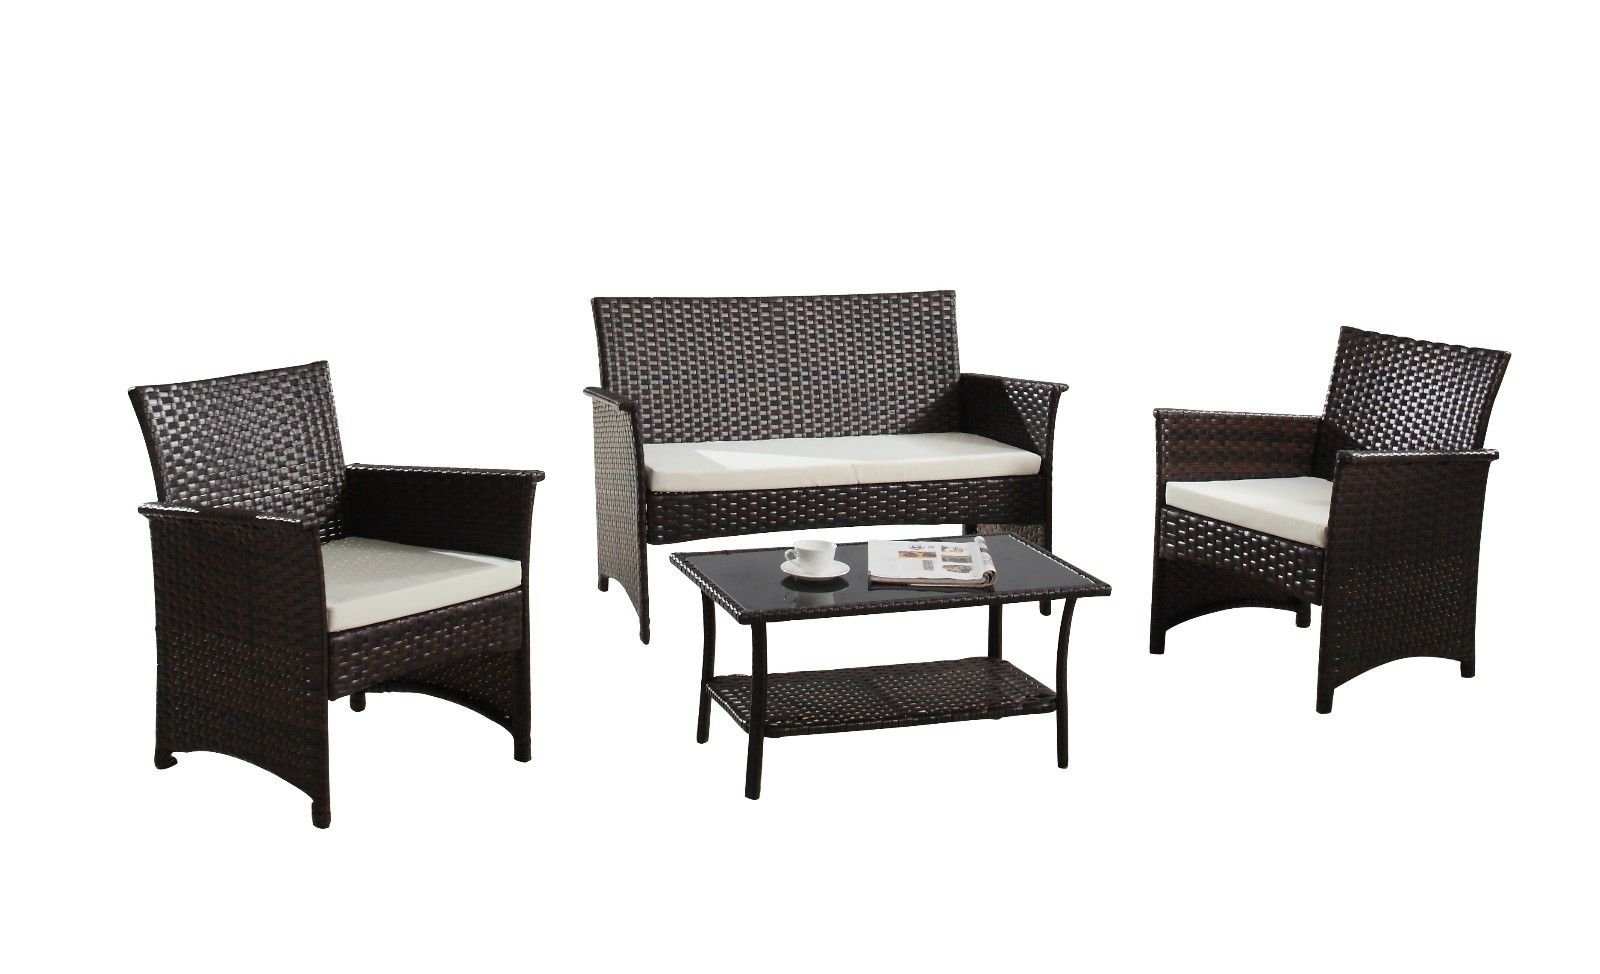 Details about Modern Contemporary Outdoor 4 Piece Patio Rattan Furniture  Set, Brown